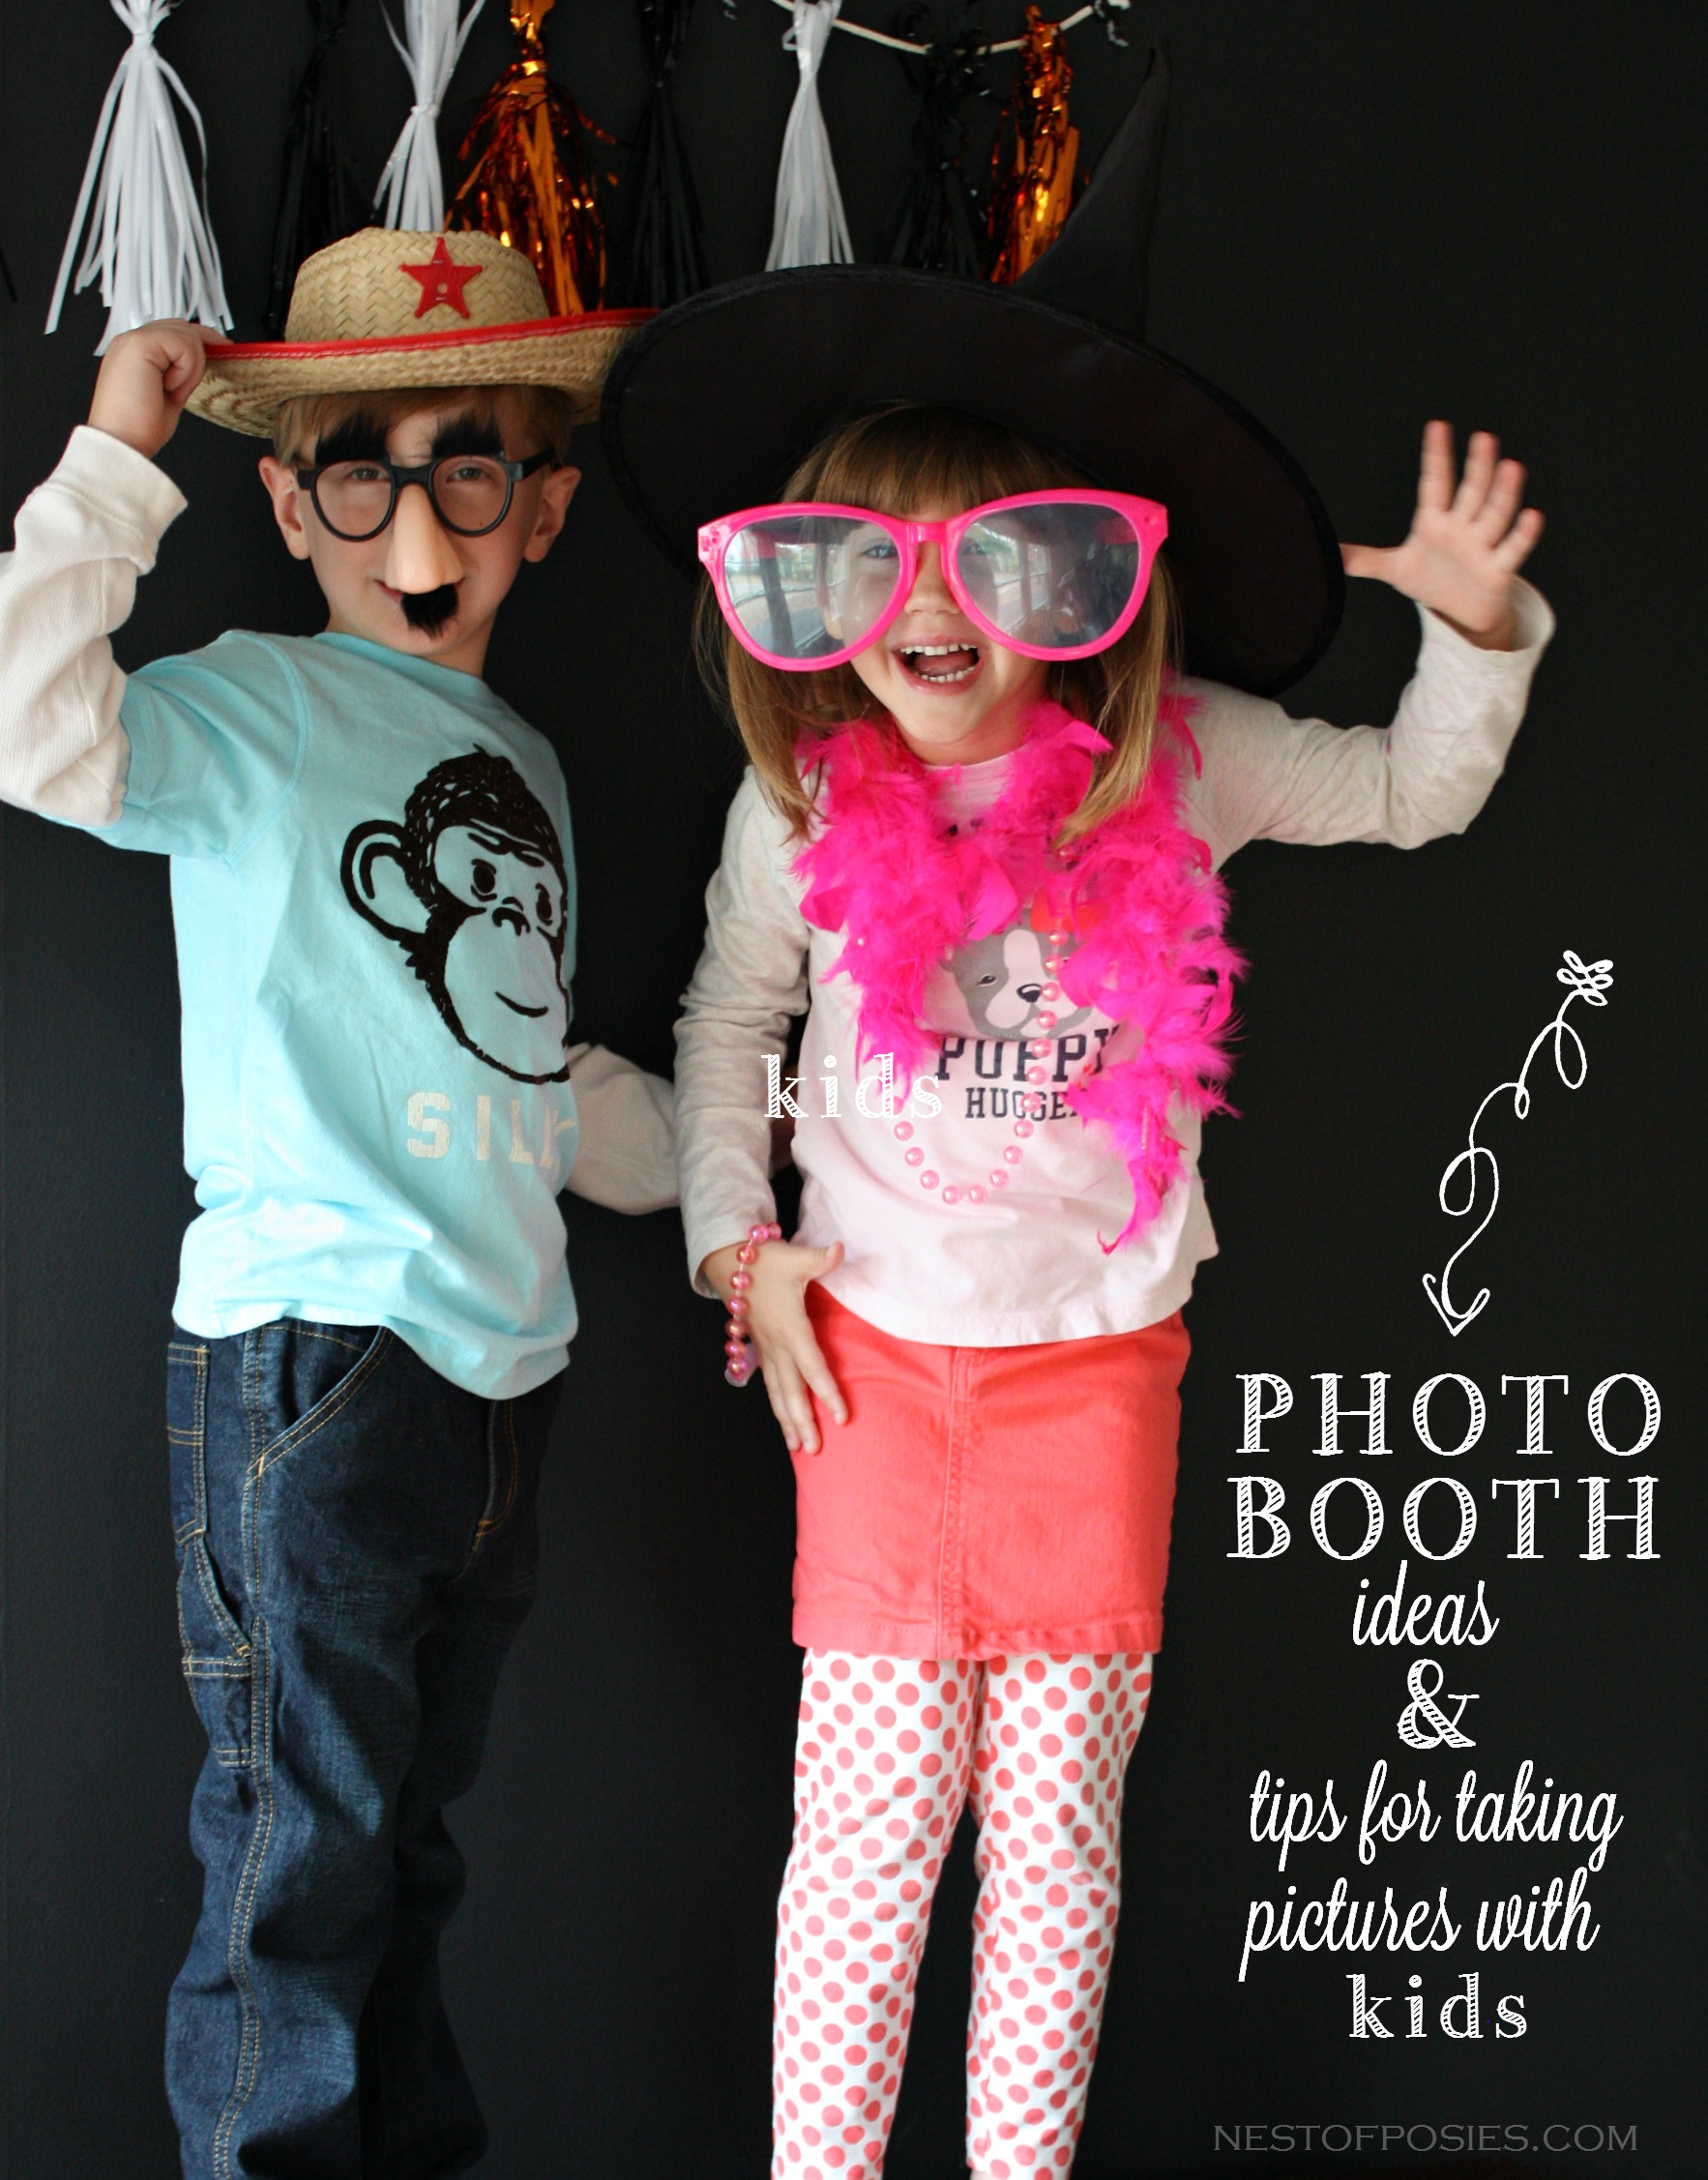 Photo Booth Ideas and tips on taking fun pictures with kids